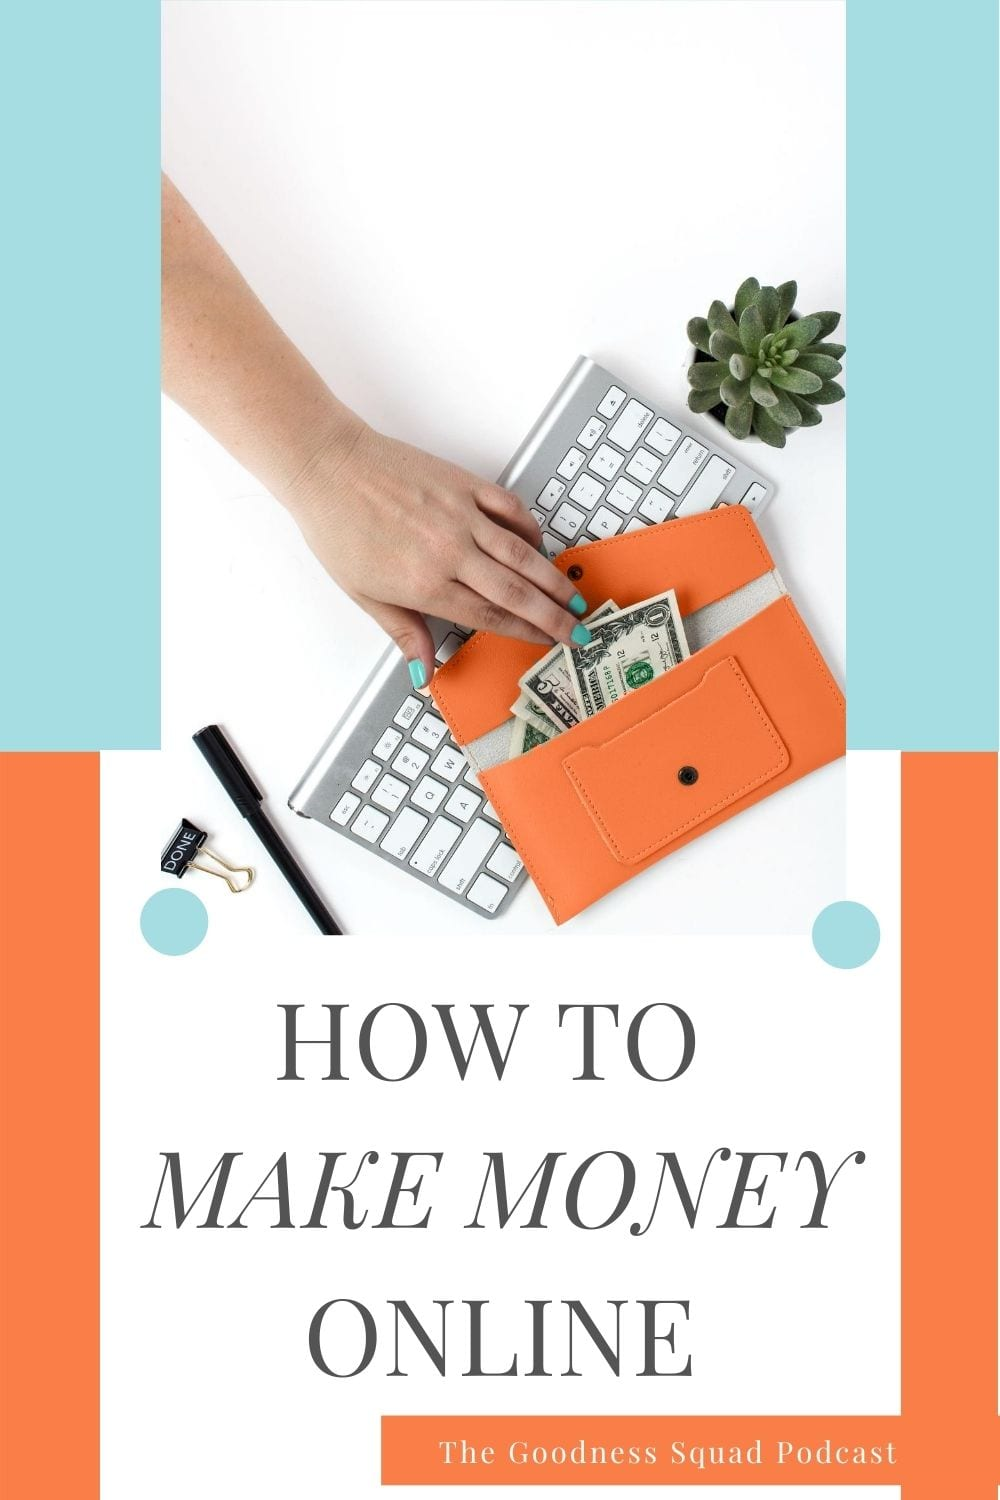 035_The 3rd step you must take to turn your side hustle into a full-fledged business